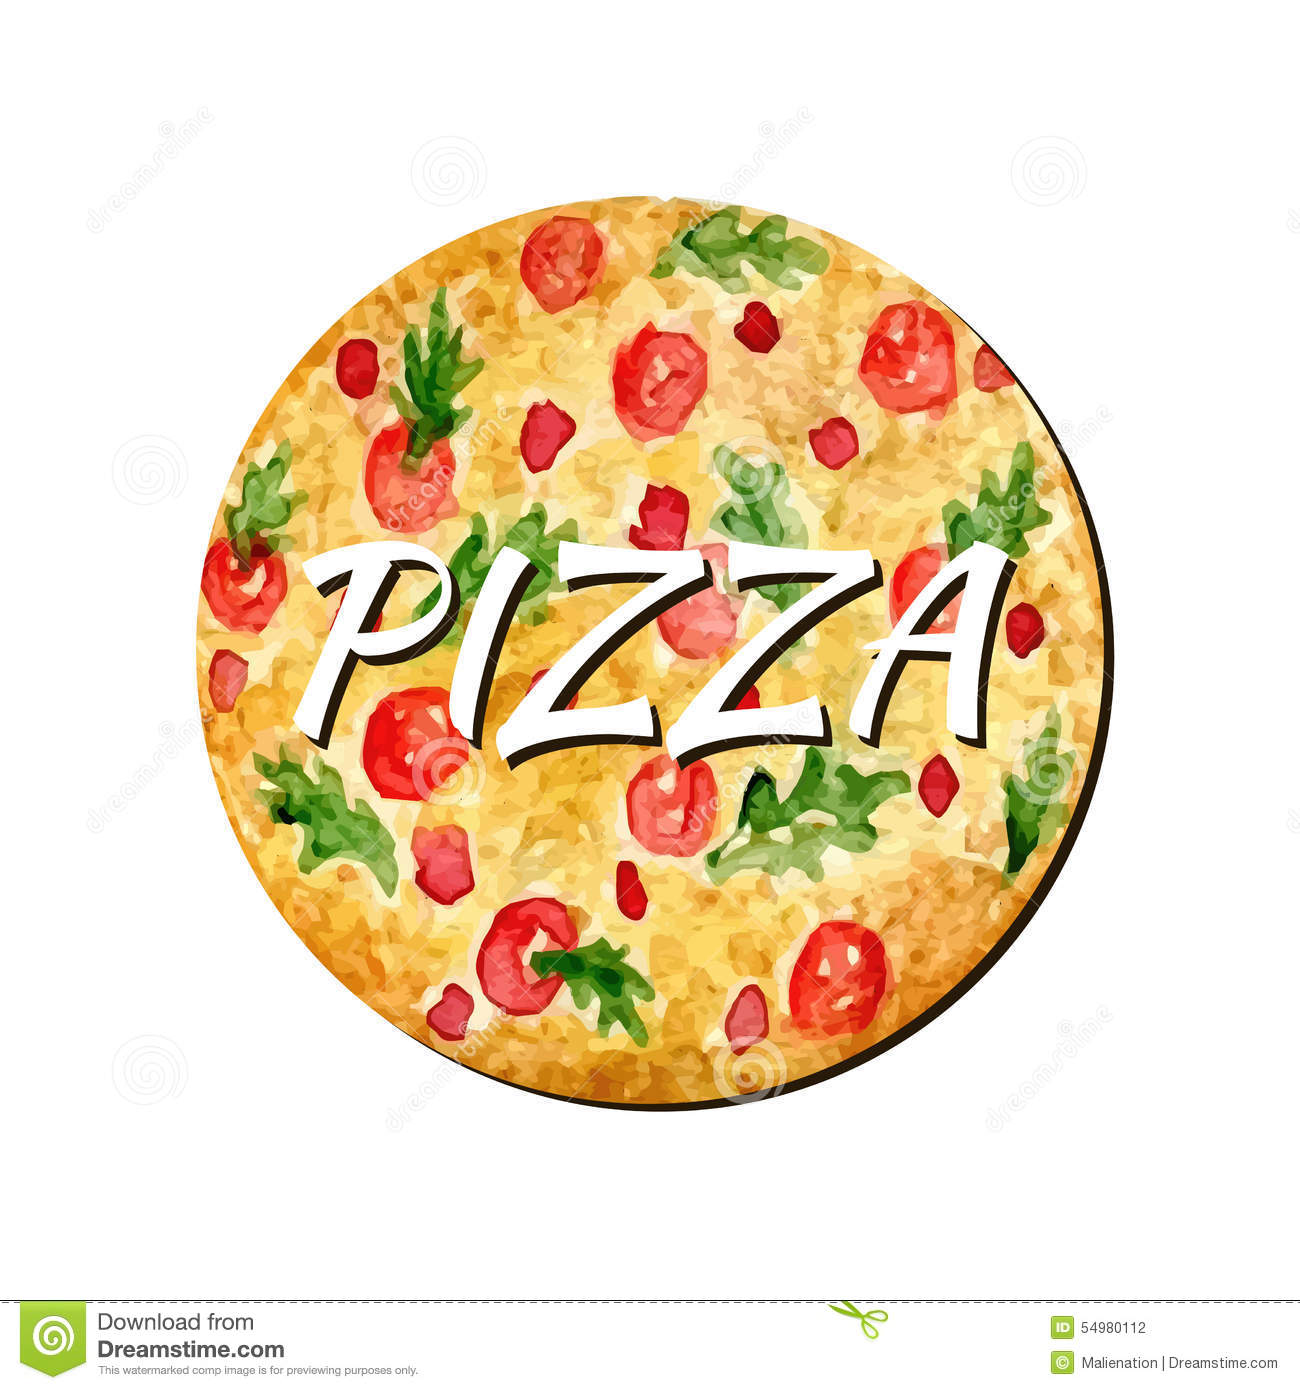 Watercolor pizza isolated artwork. Hand paint vector illustration. Watercolor can be used for sticker, avatar, logo or icon.